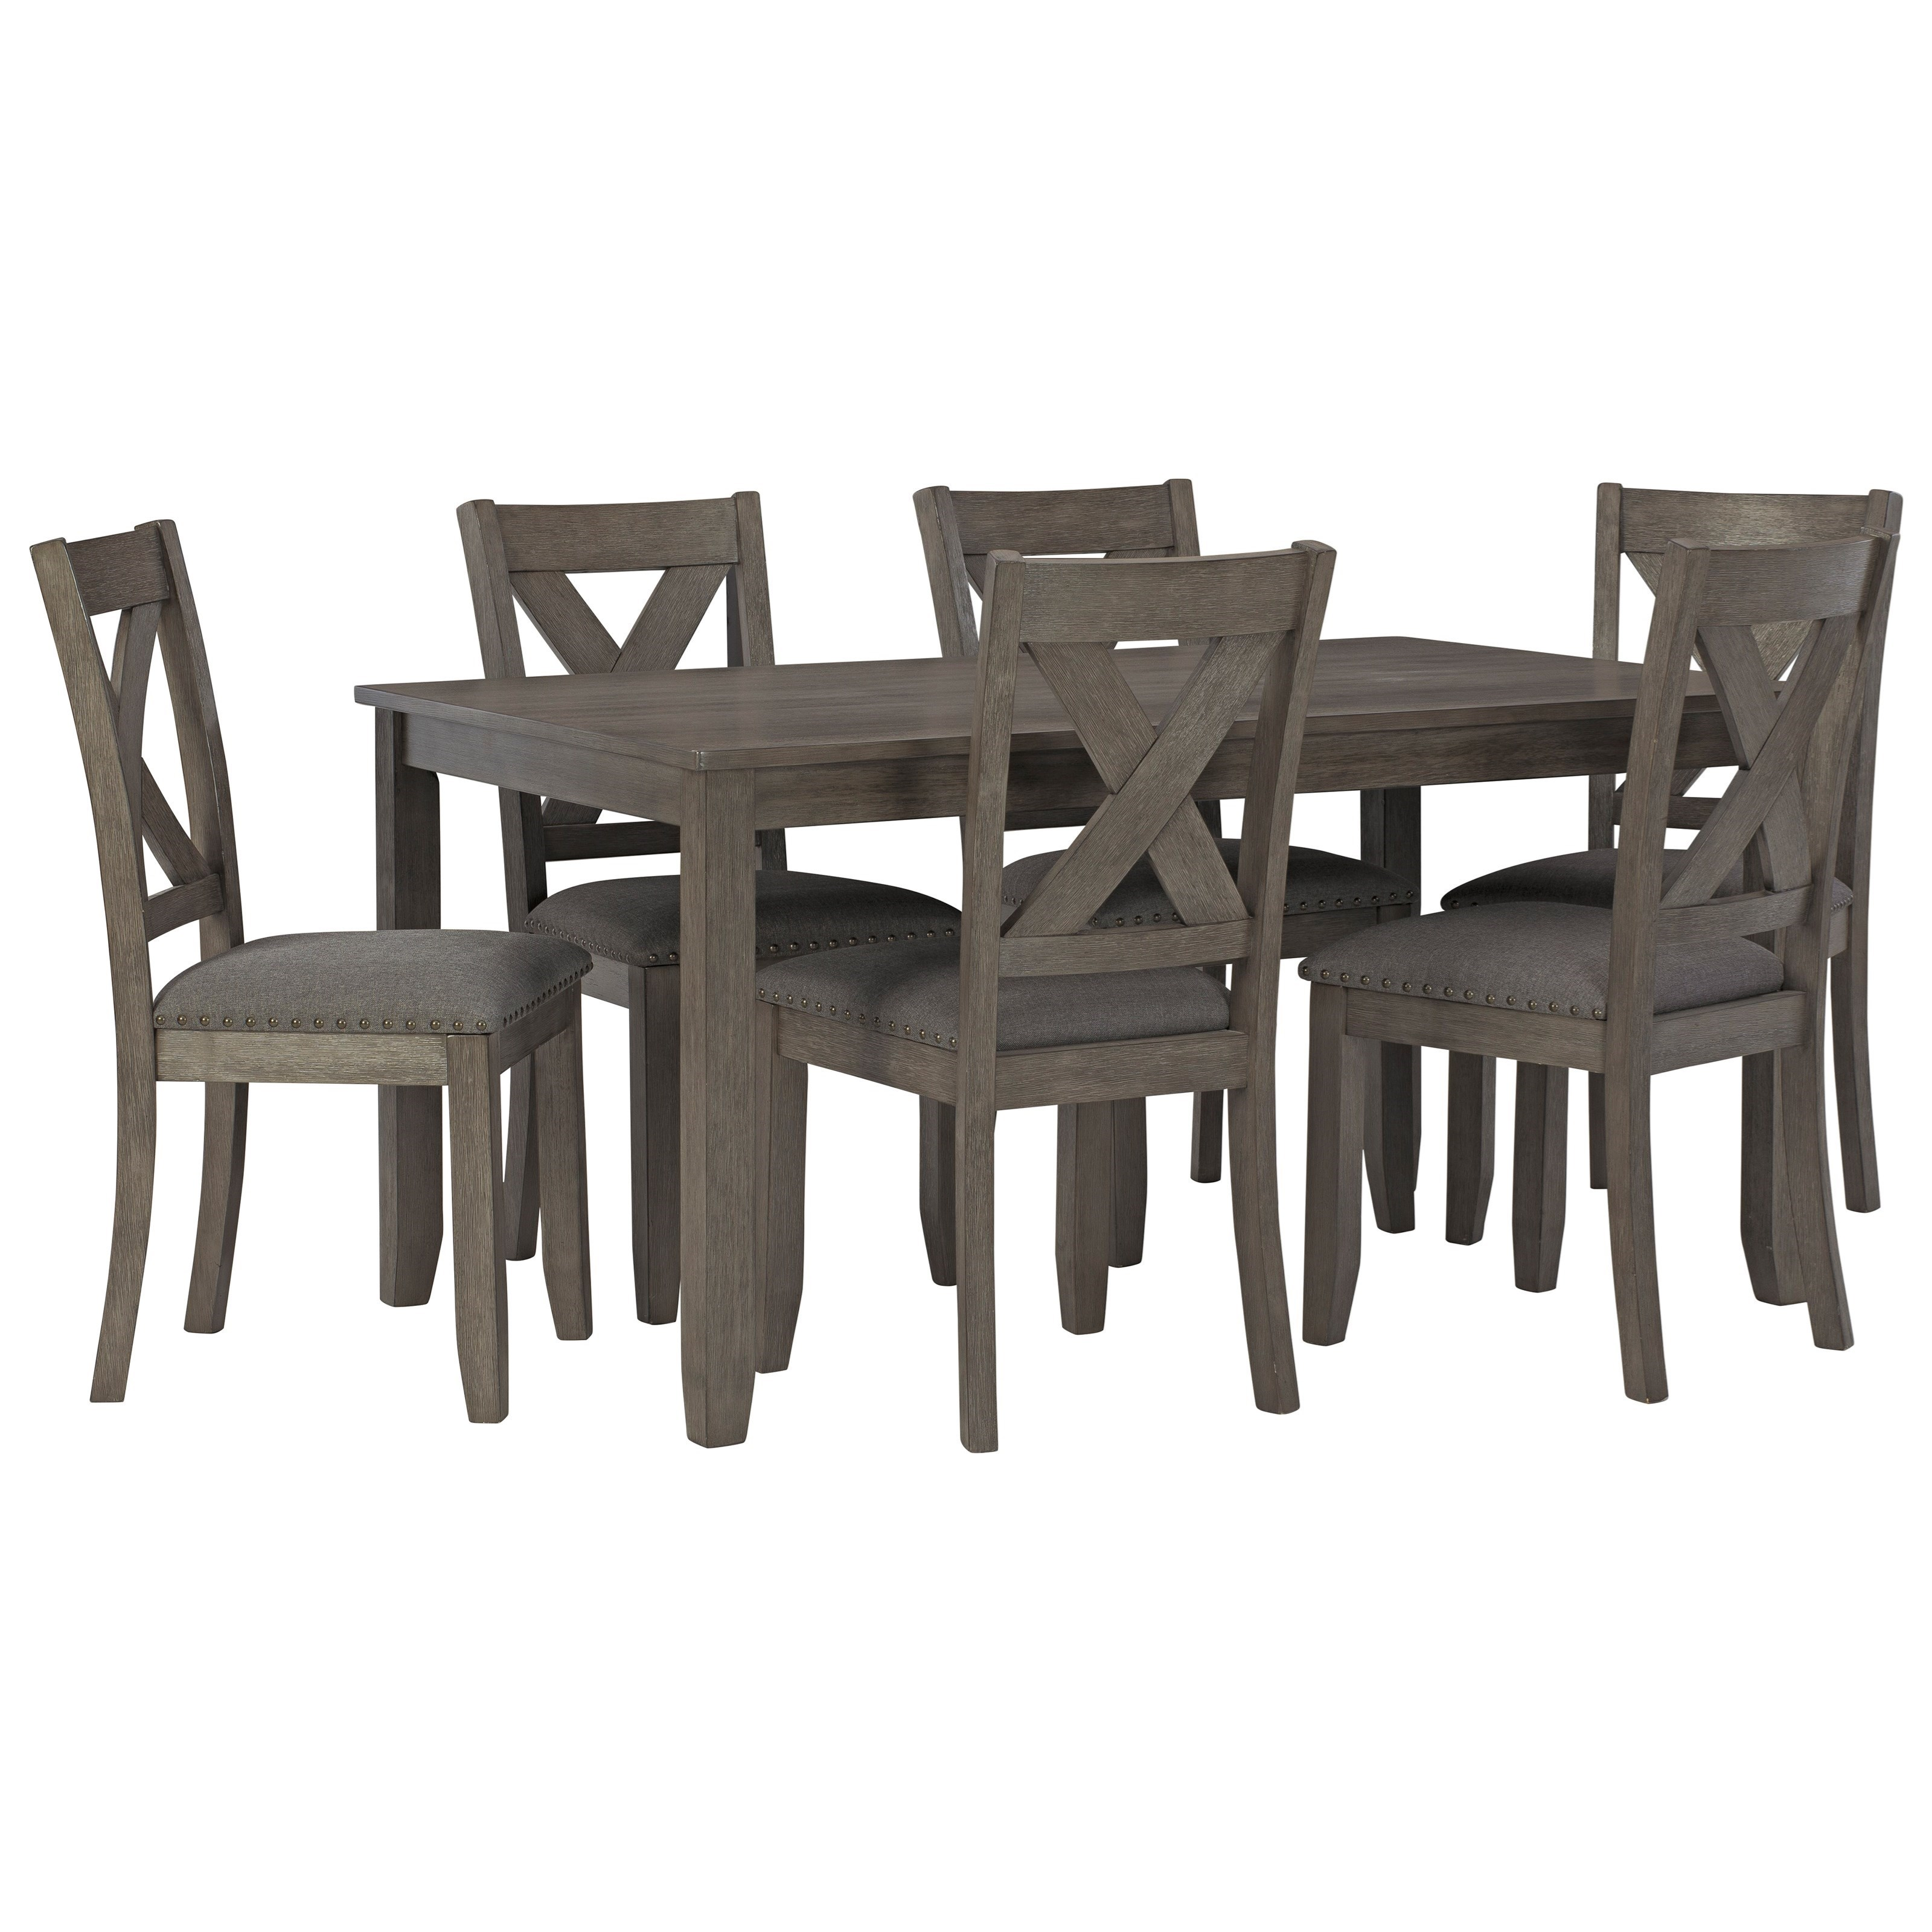 Signature Design By Ashley Caitbrook Ashl D388 425 7 Piece Rectangular Dining Room Table Set Household Furniture Dining 7 Or More Piece Sets